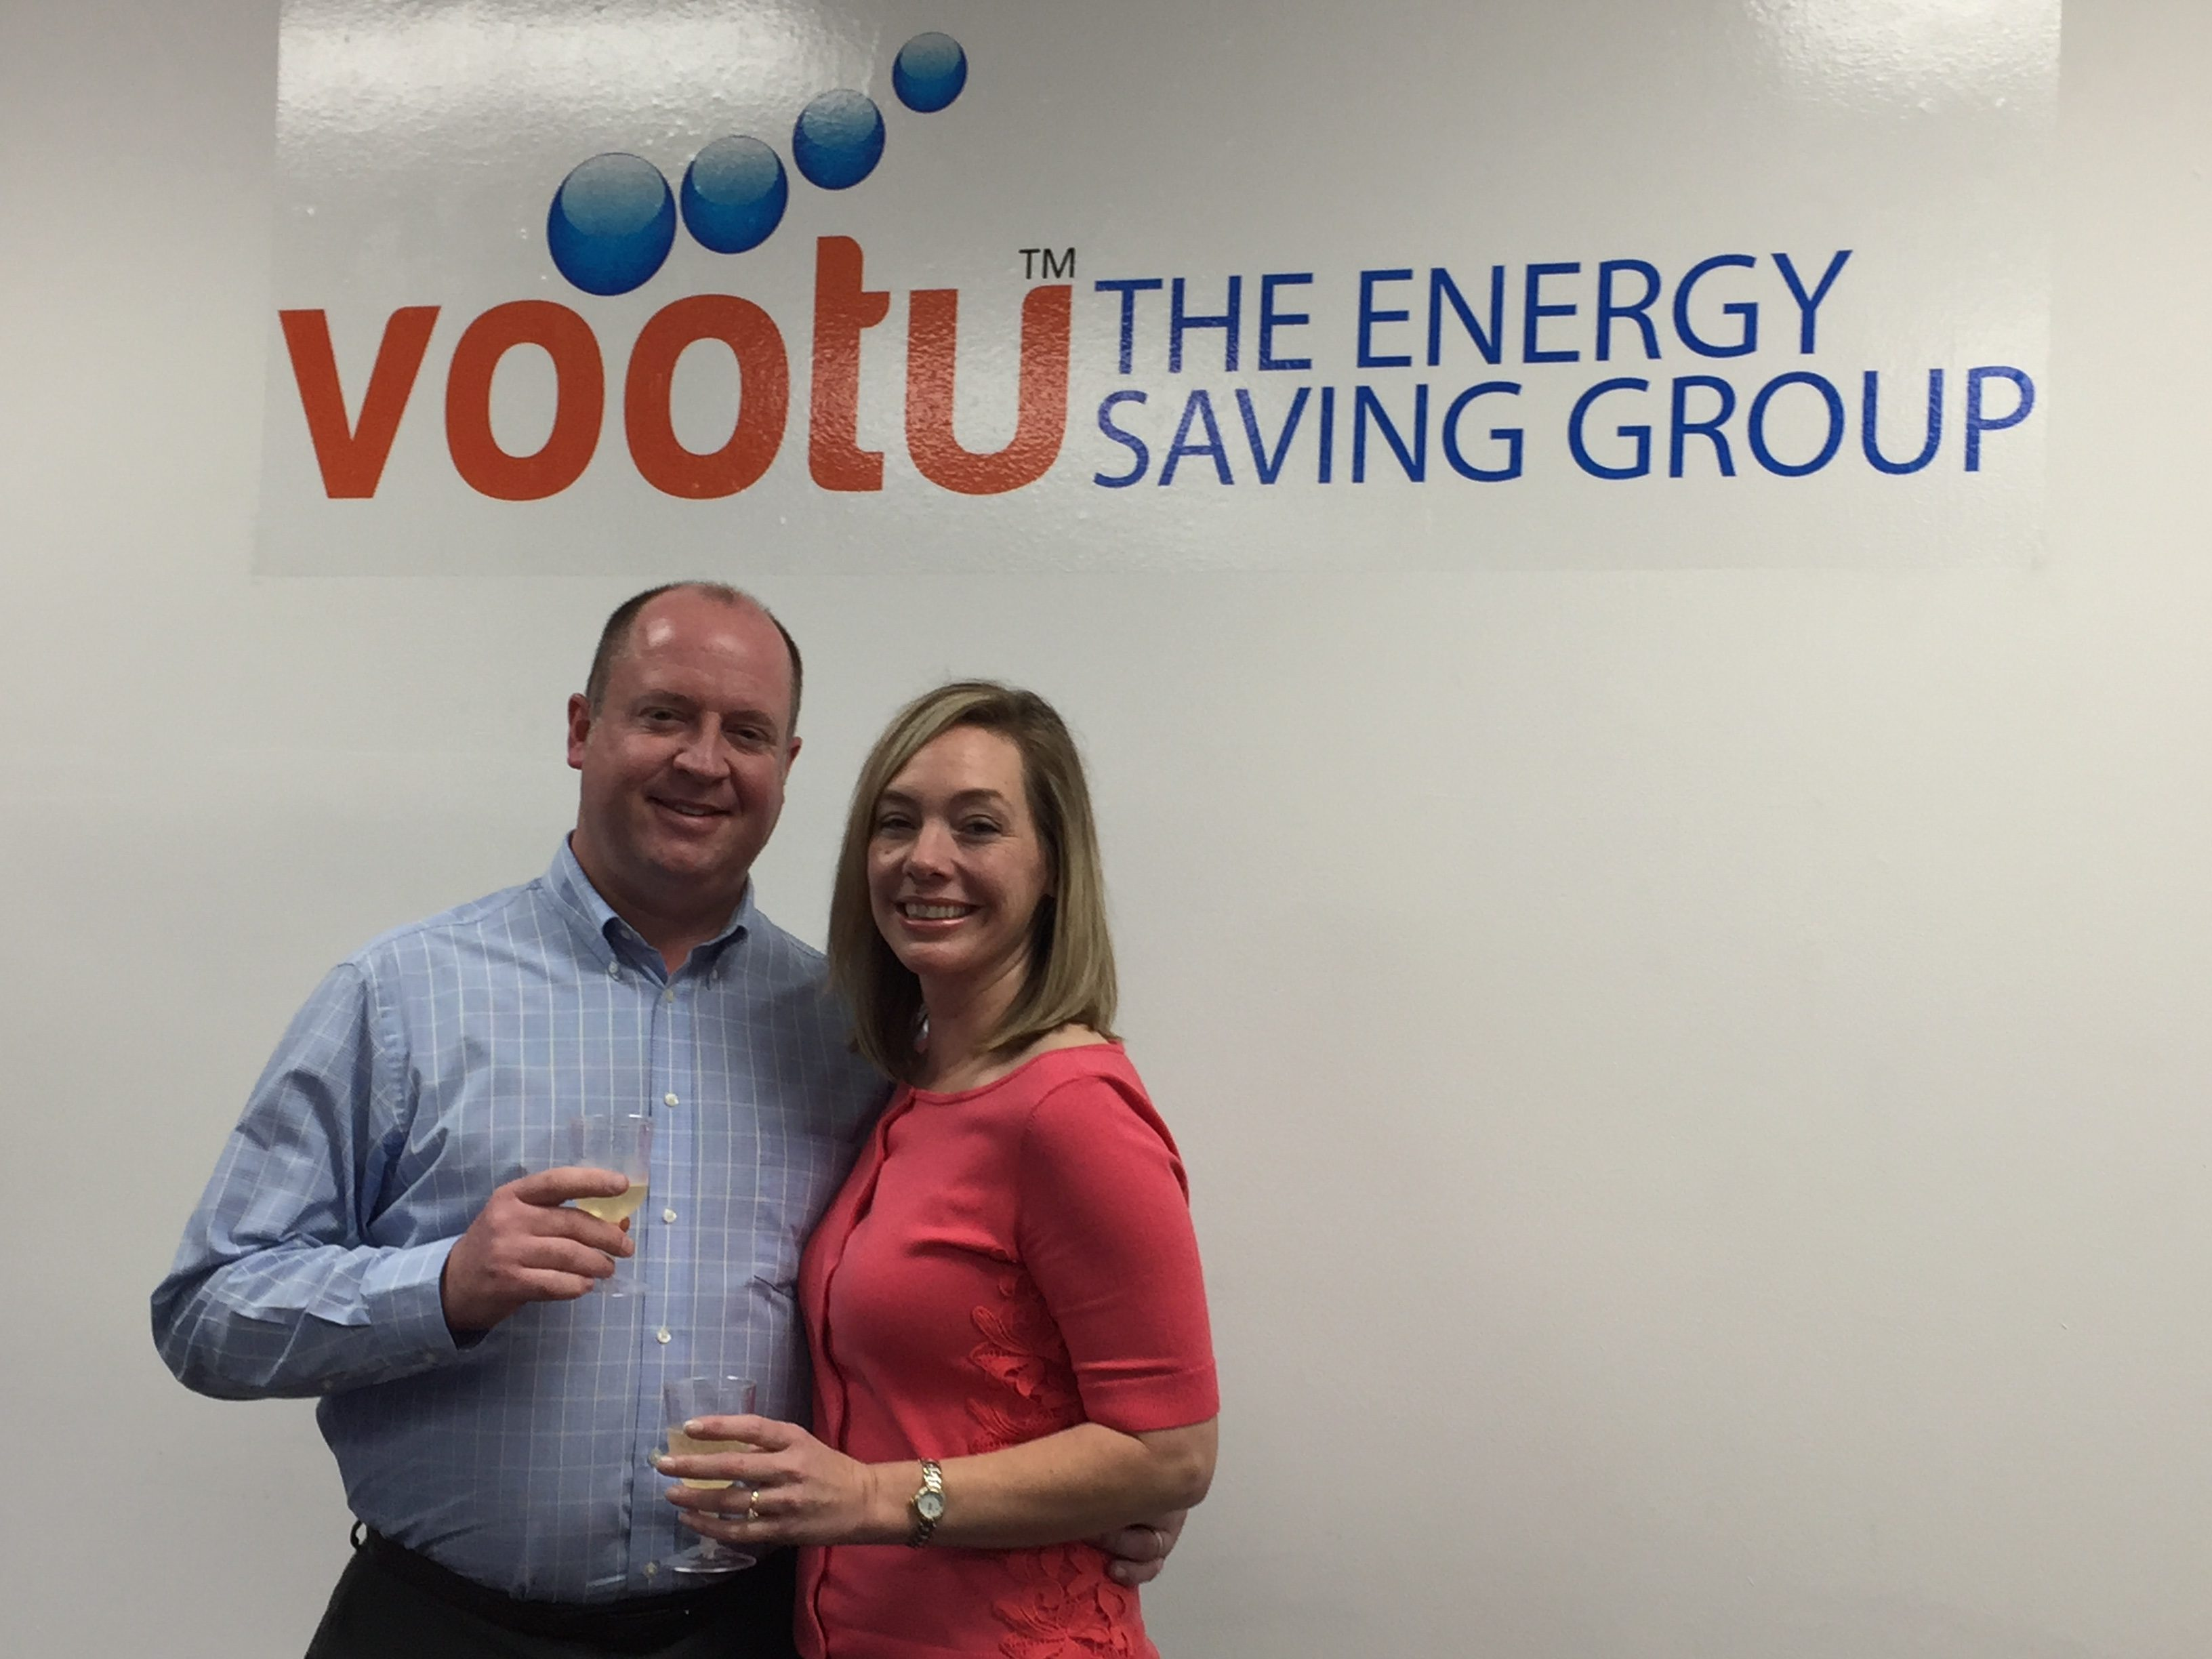 Congratulations to Jason & Lillian, vootu's first franchisees!